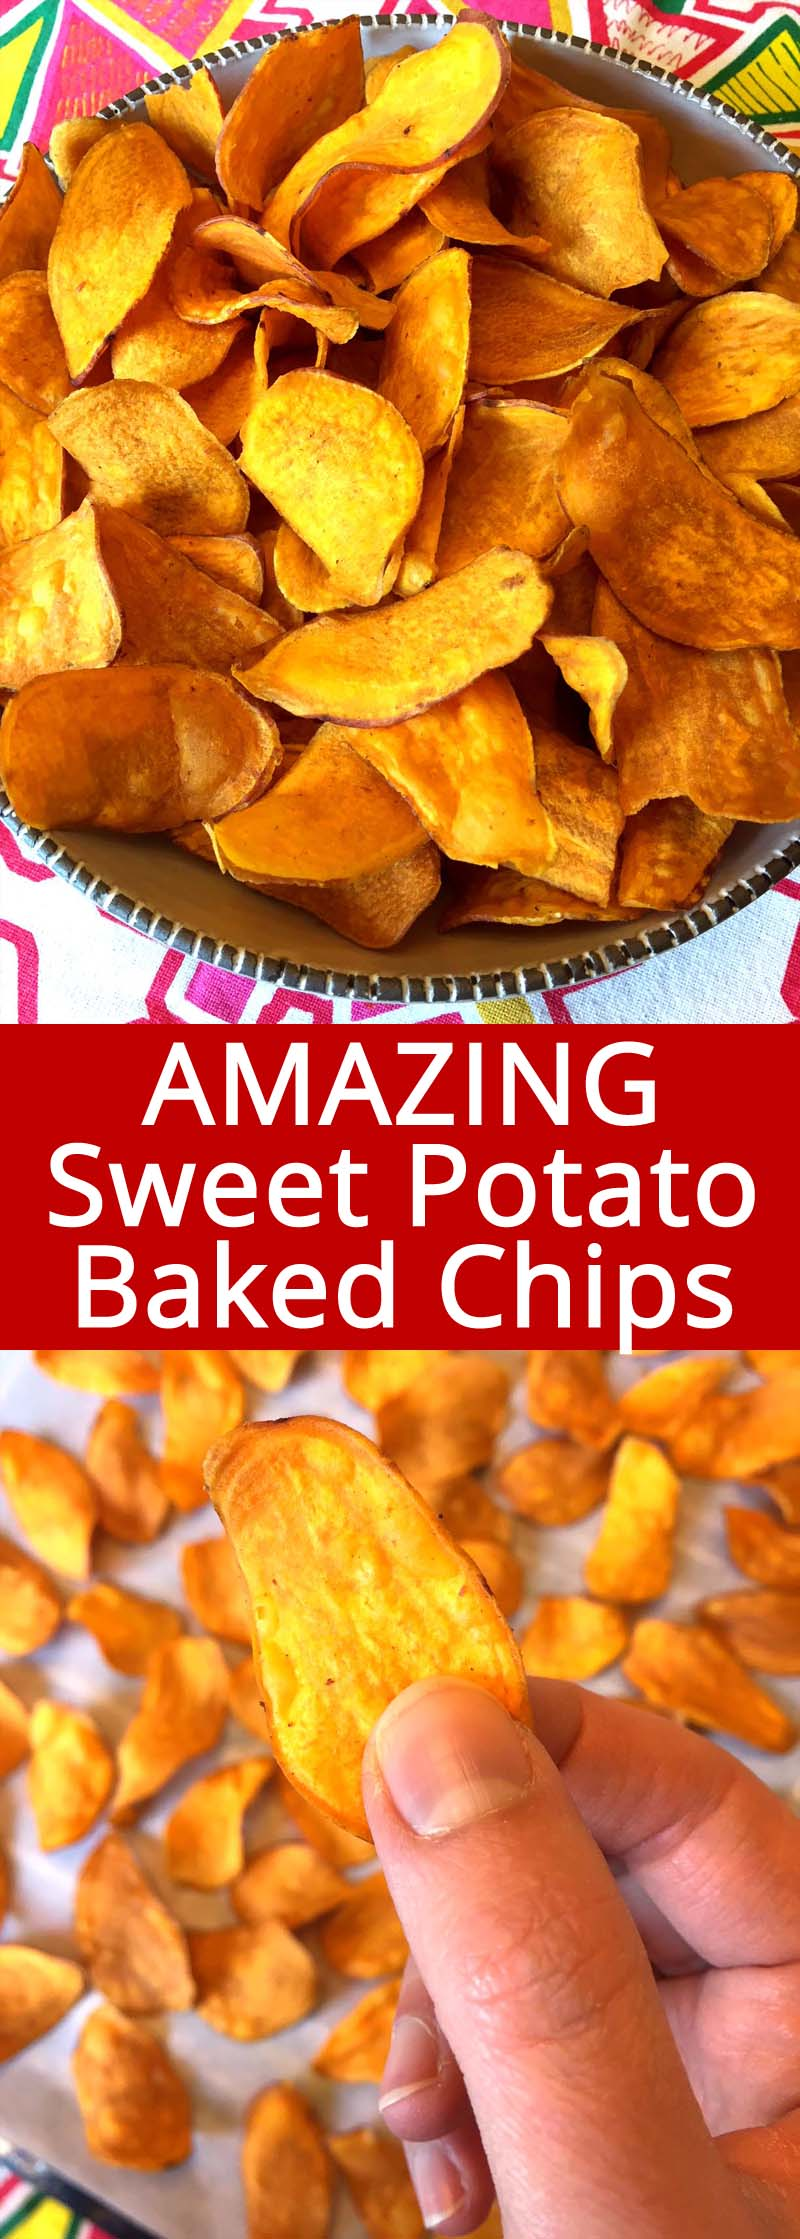 These oven baked sweet potato chips are amazing! They are so crunchy and addictive! What a perfect healthy snack, I love this easy baked sweet potato chips recipe! #sweetpotatoes #sweetpotato #chips #veggiechips